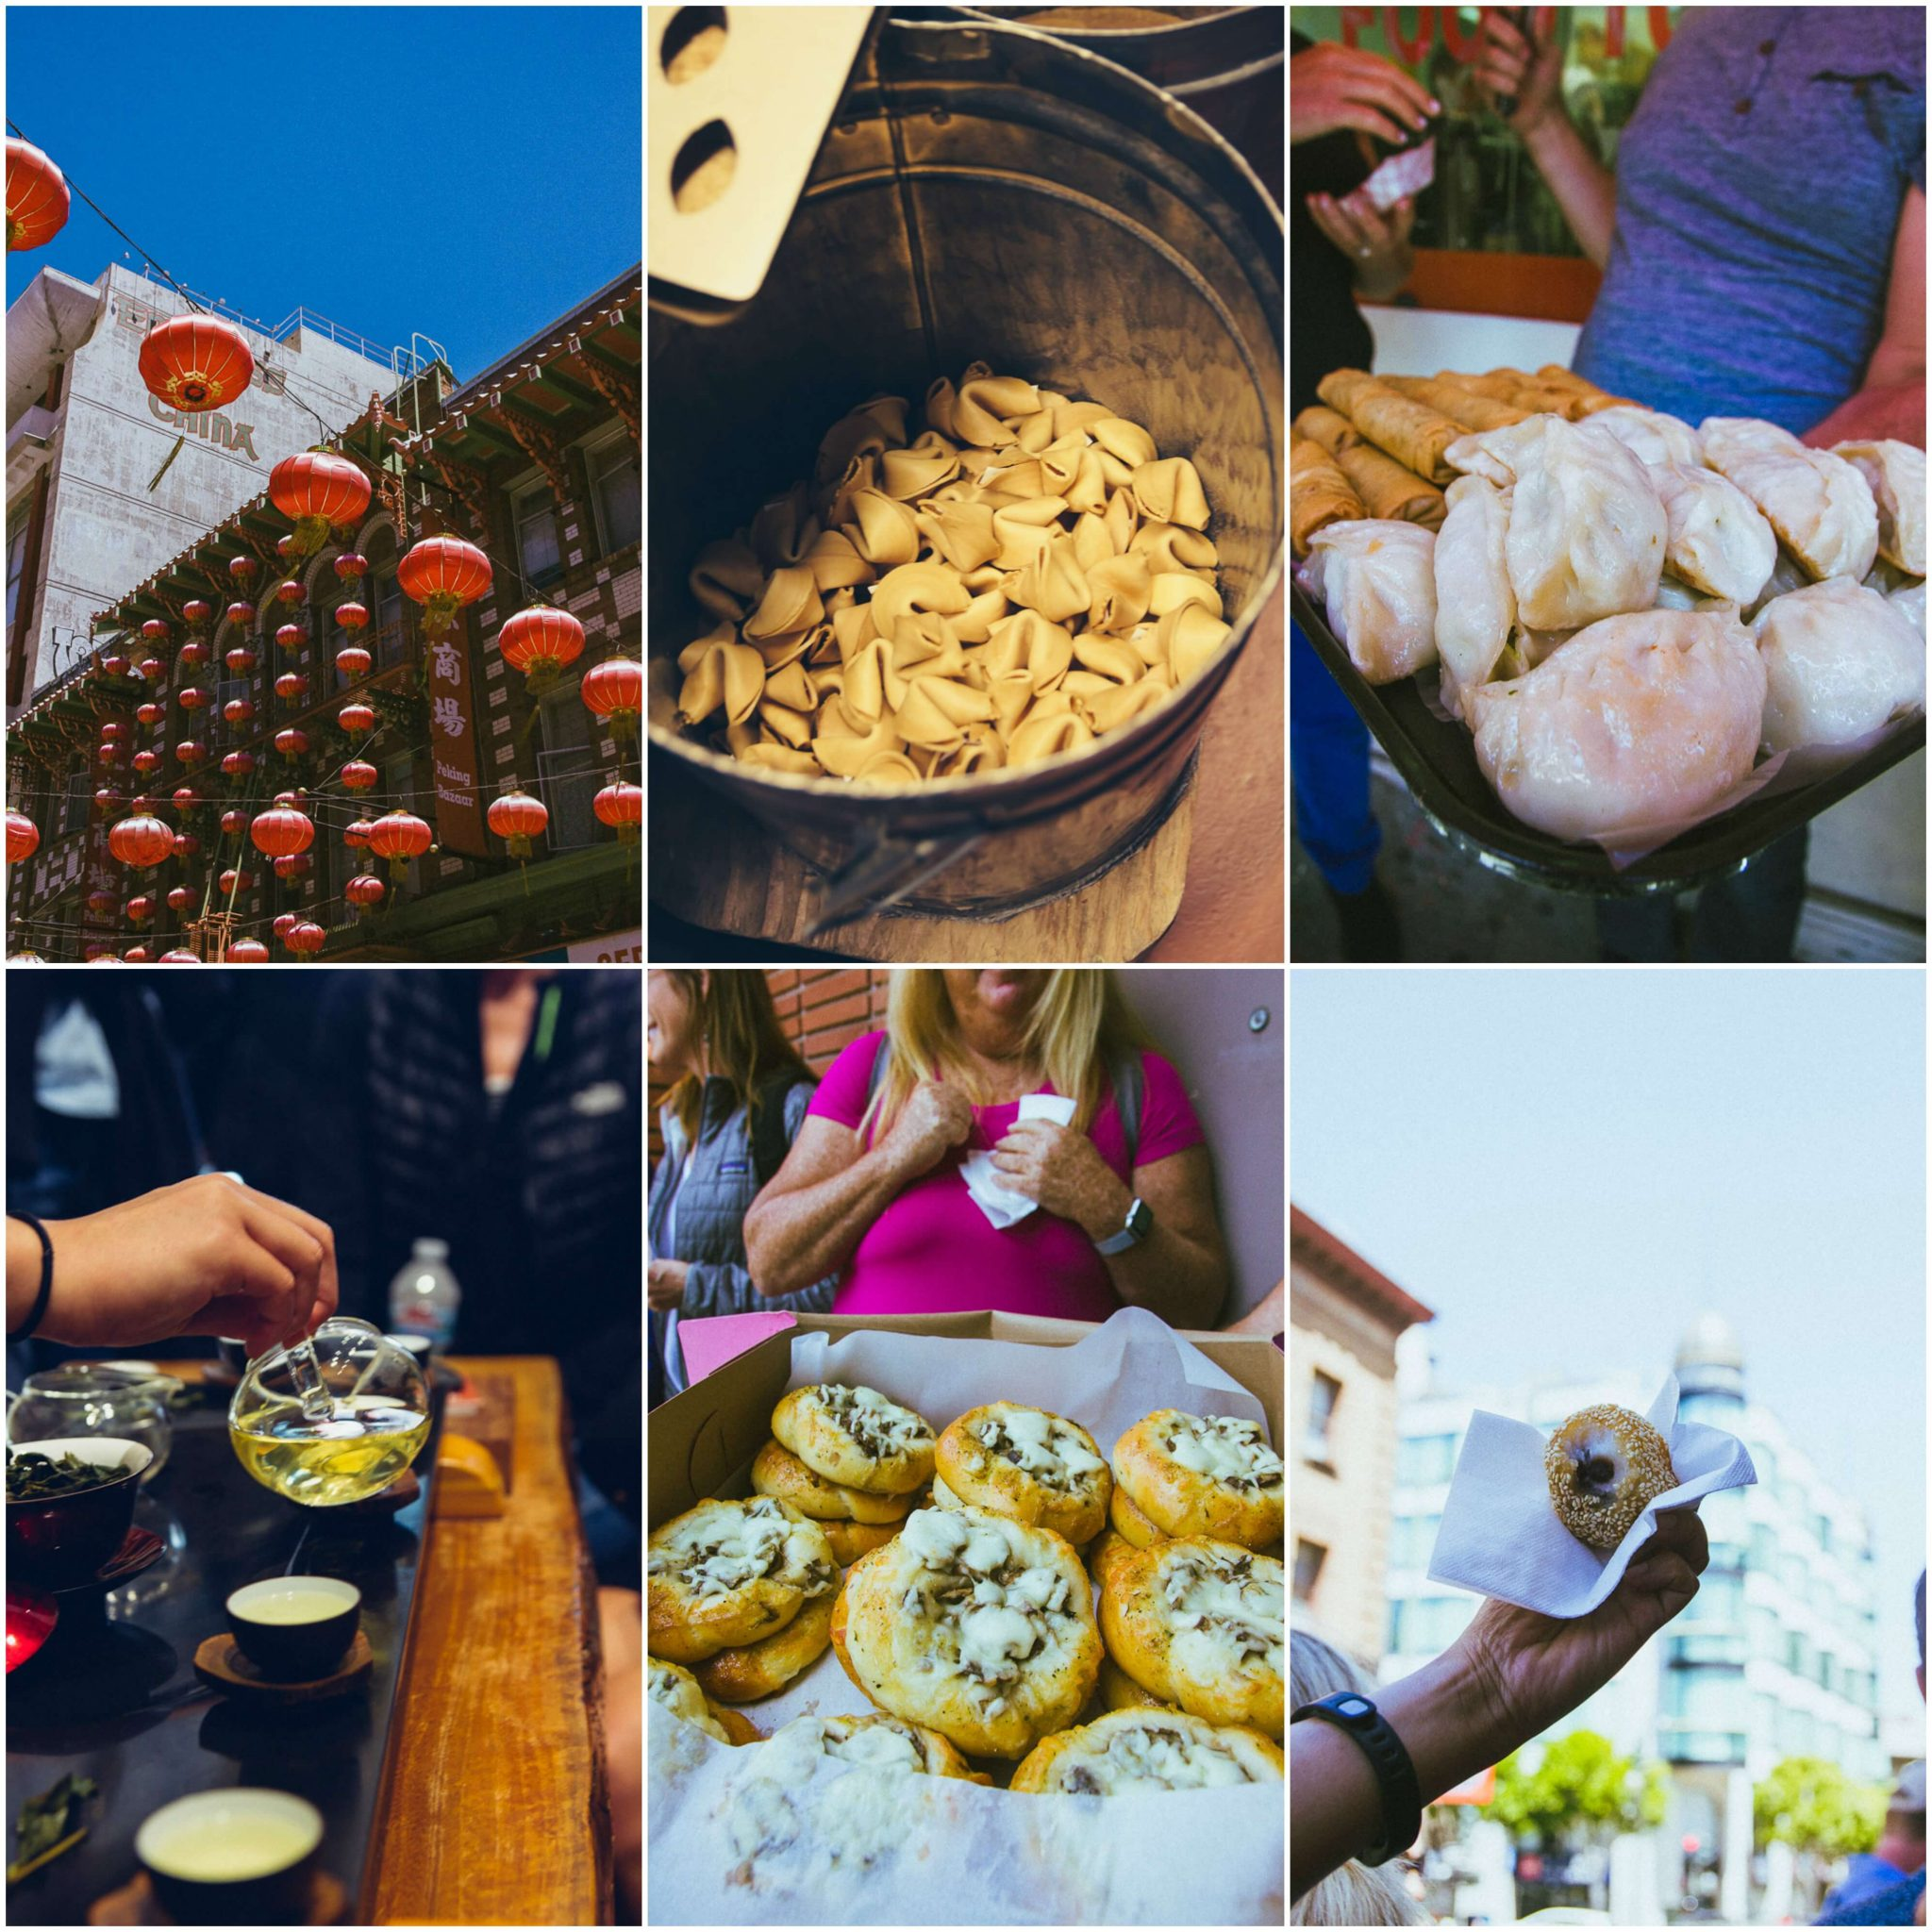 foodie experiences in San Francisco, Culinary experiences in San Francisco